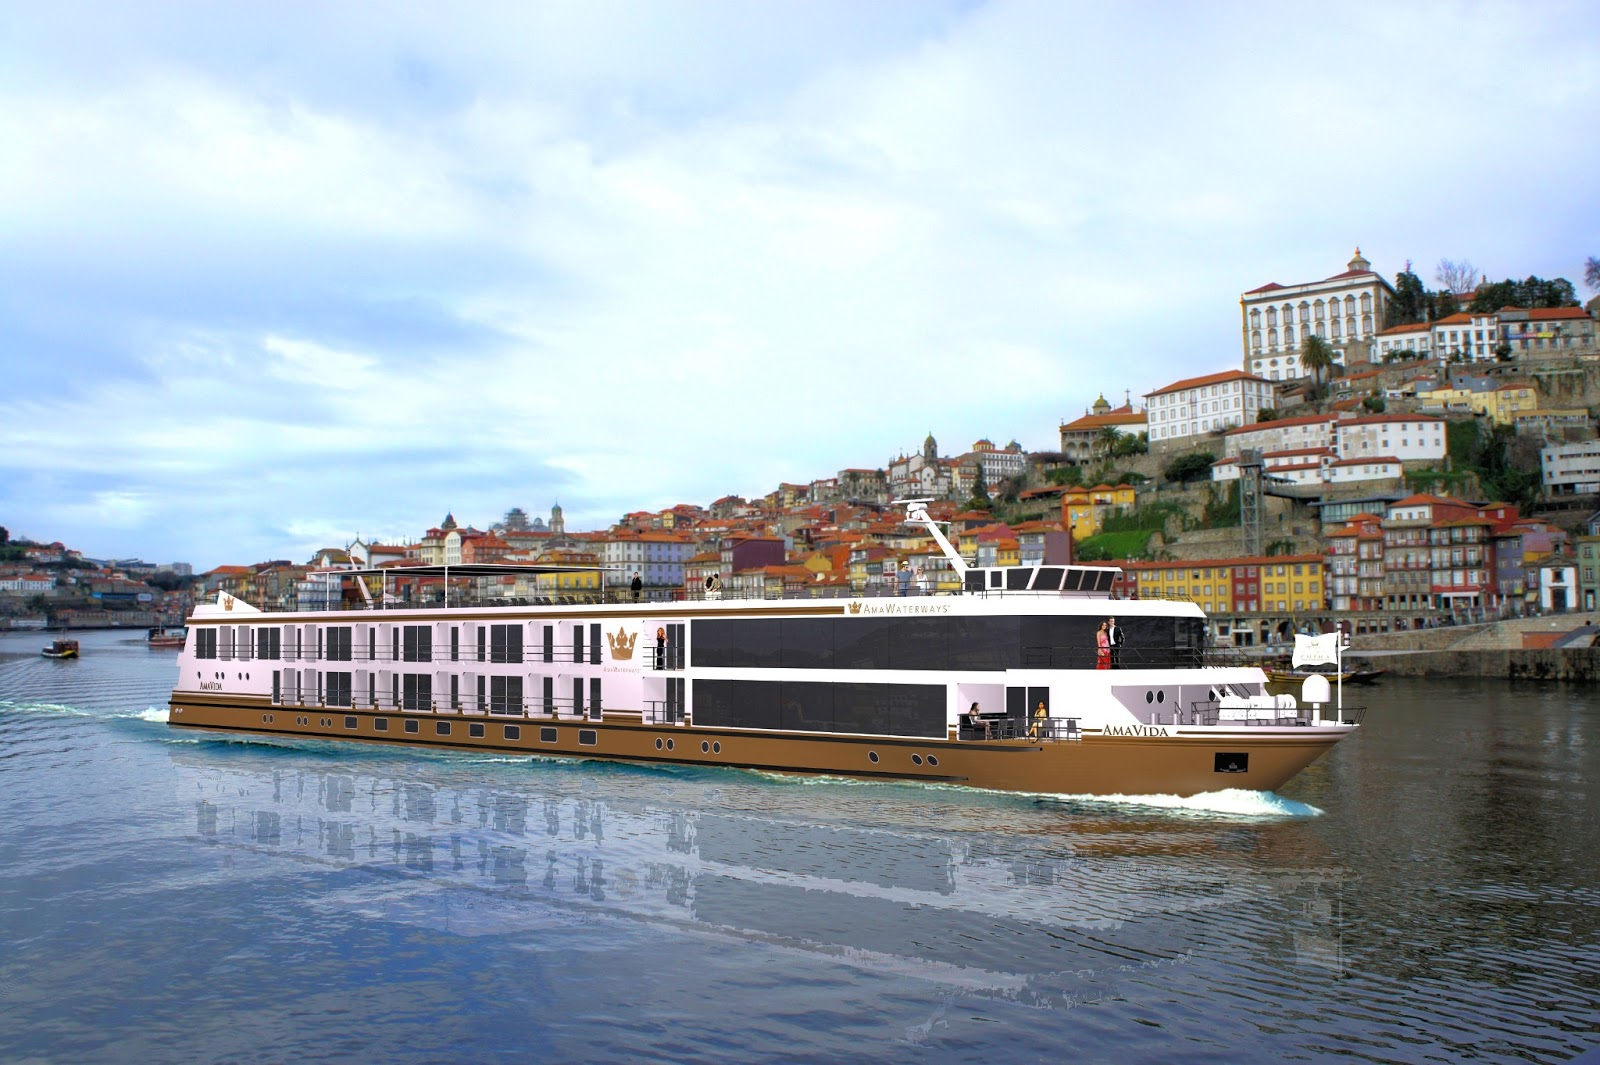 AmaWaterways' 'AmaVida' debuted on the Douro River in Portugal in 2013. Photo: Property of AmaWaterways. Unauthorized use is prohibited.